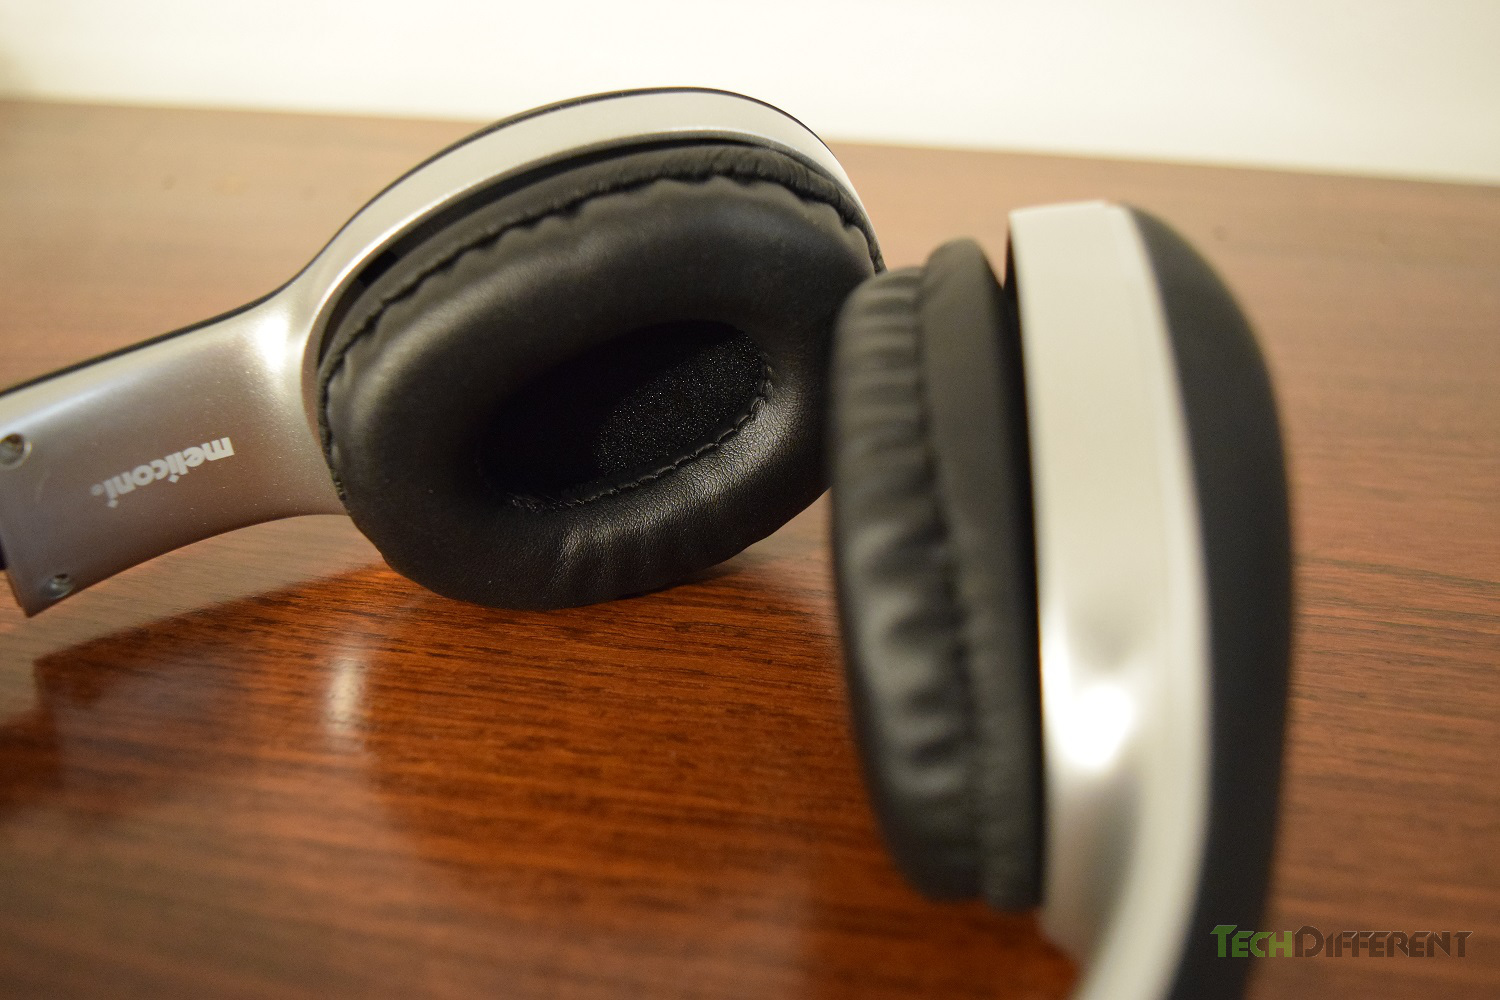 Recensione cuffie meliconi mysound by techdifferent for Cuffie antirumore per studiare